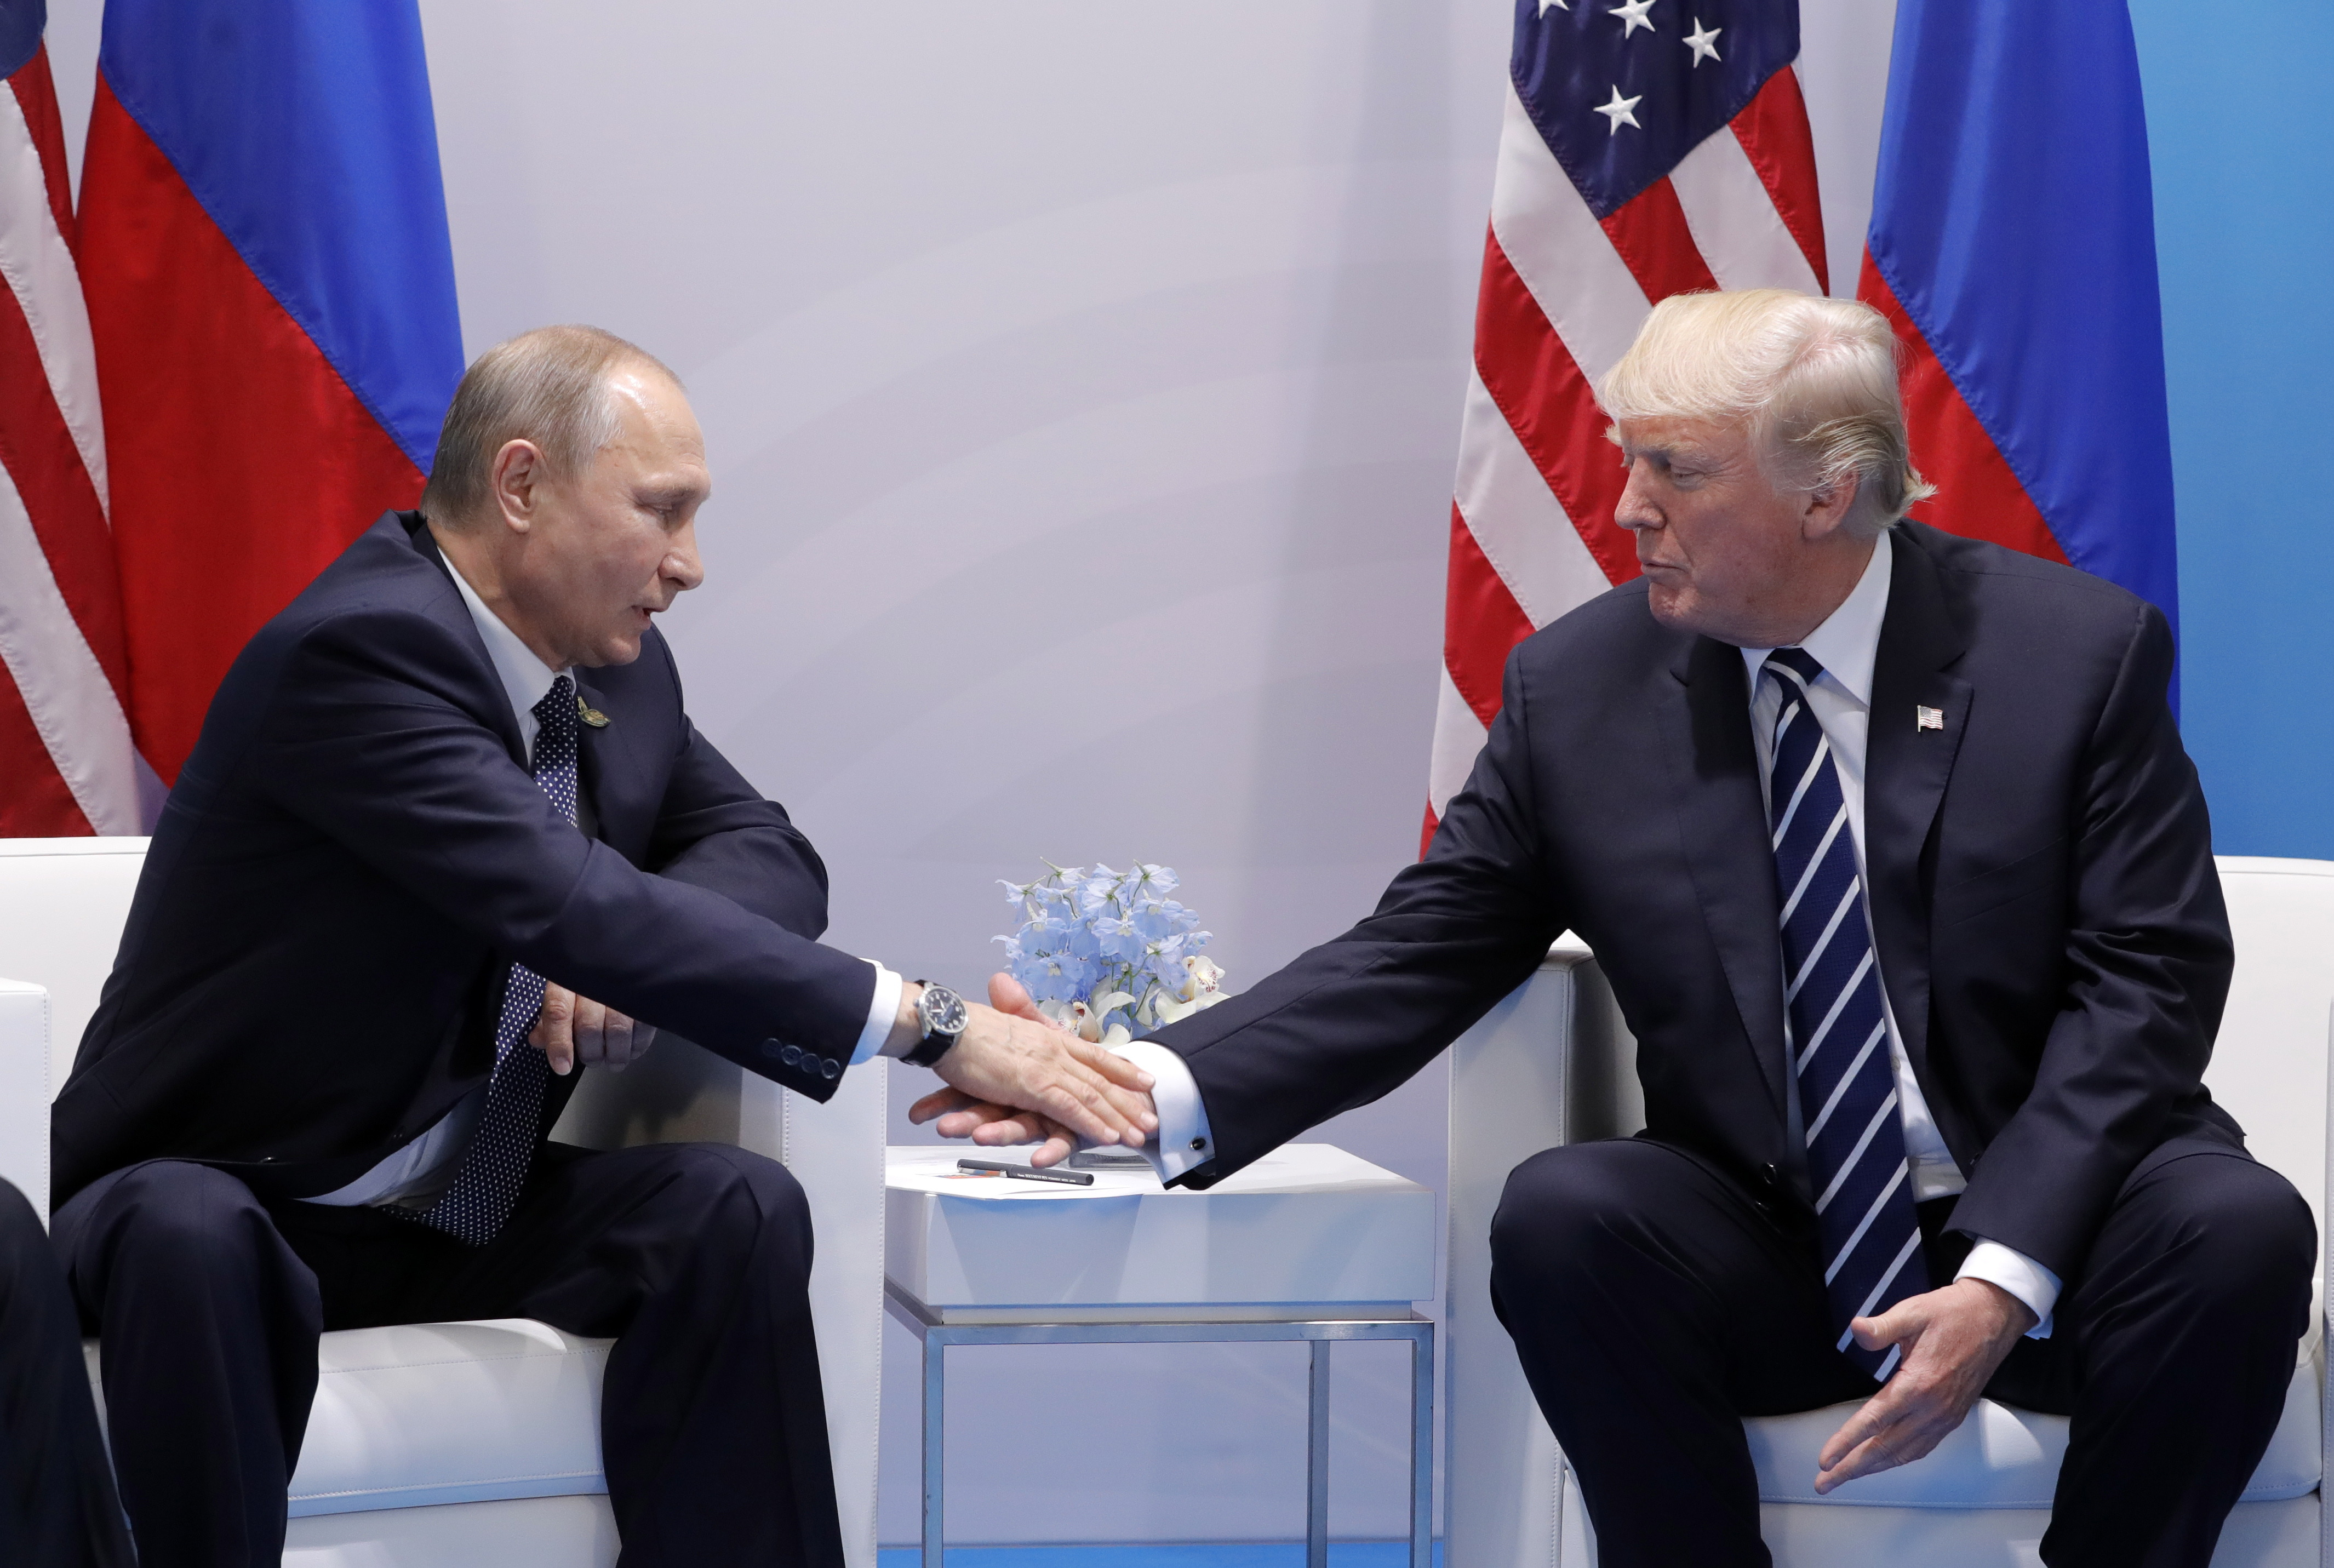 Interview: US and Russia Have Entered a 'Phase of Enormous Danger'